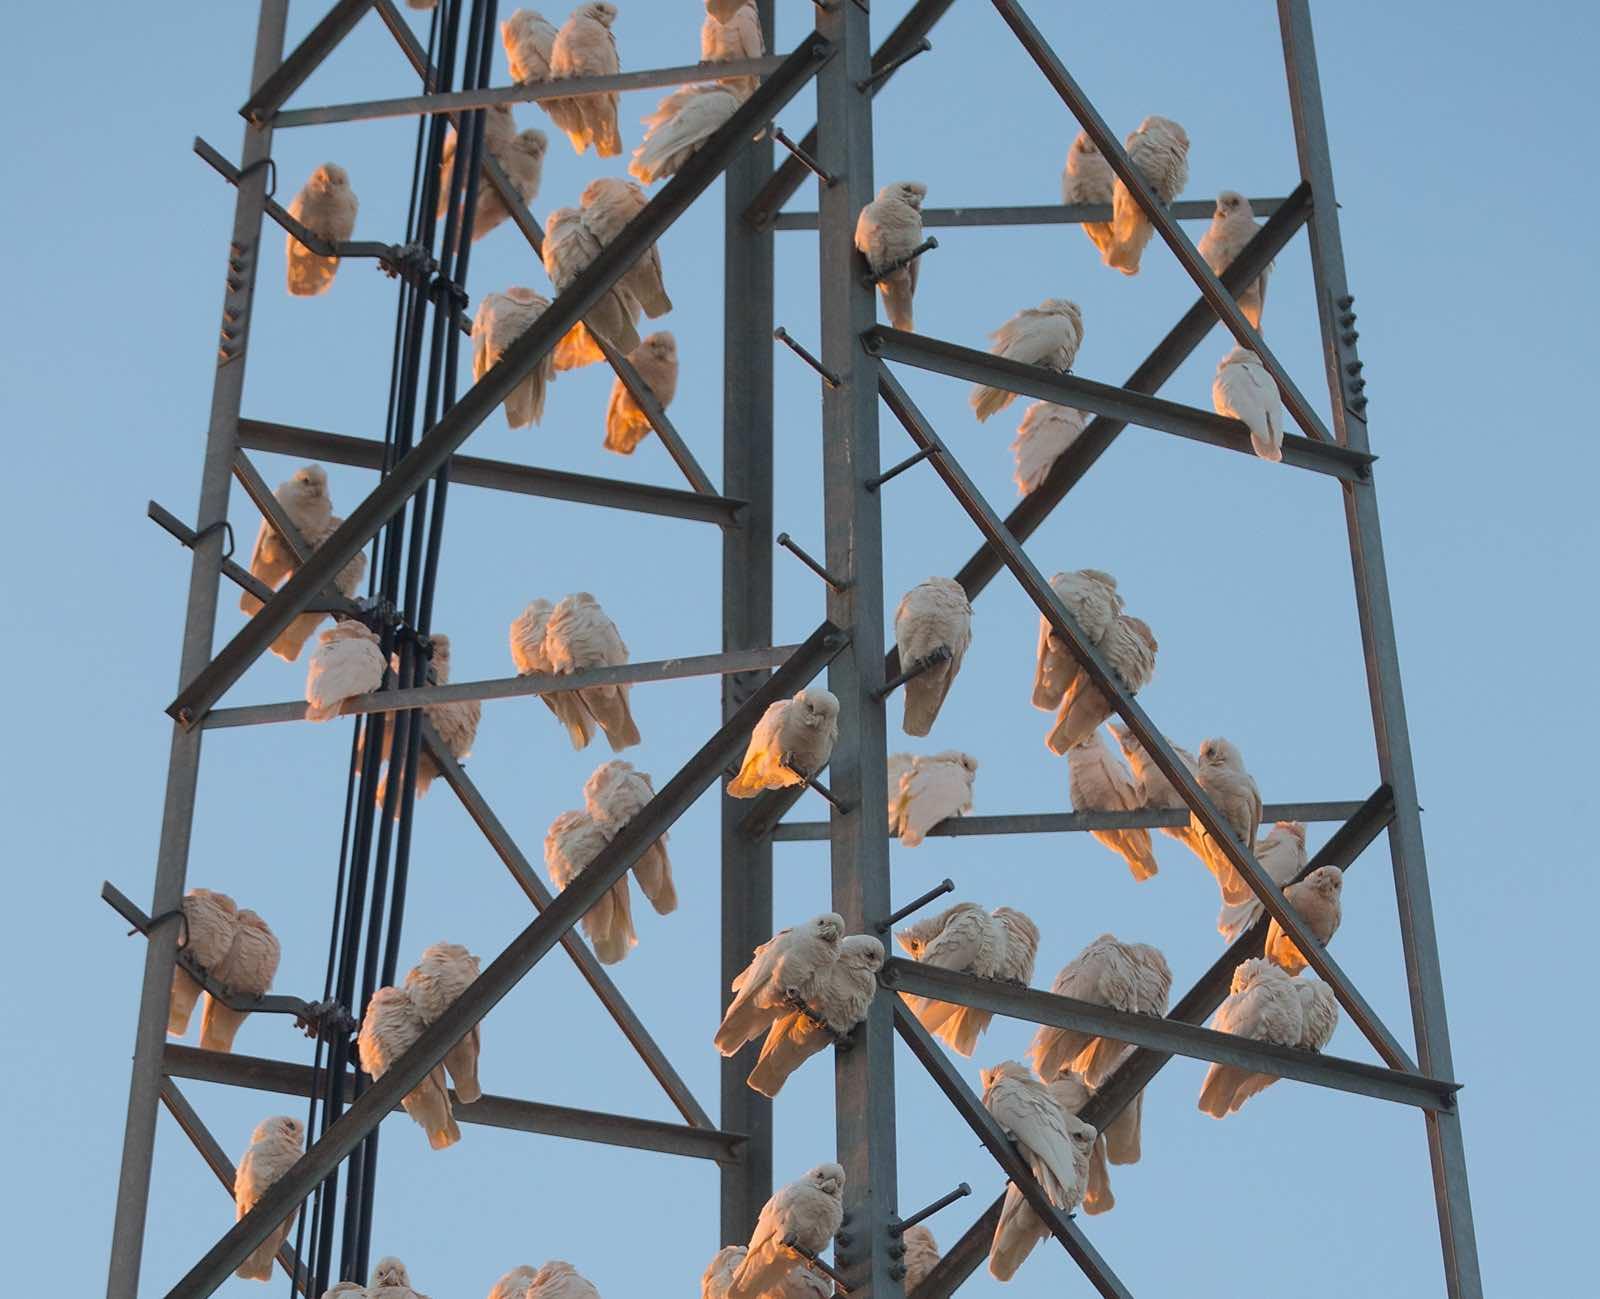 Corellas gather on a telephone tower at dawn in Louth, NSW, Australia (Photo: Mark Evans/Getty Images)